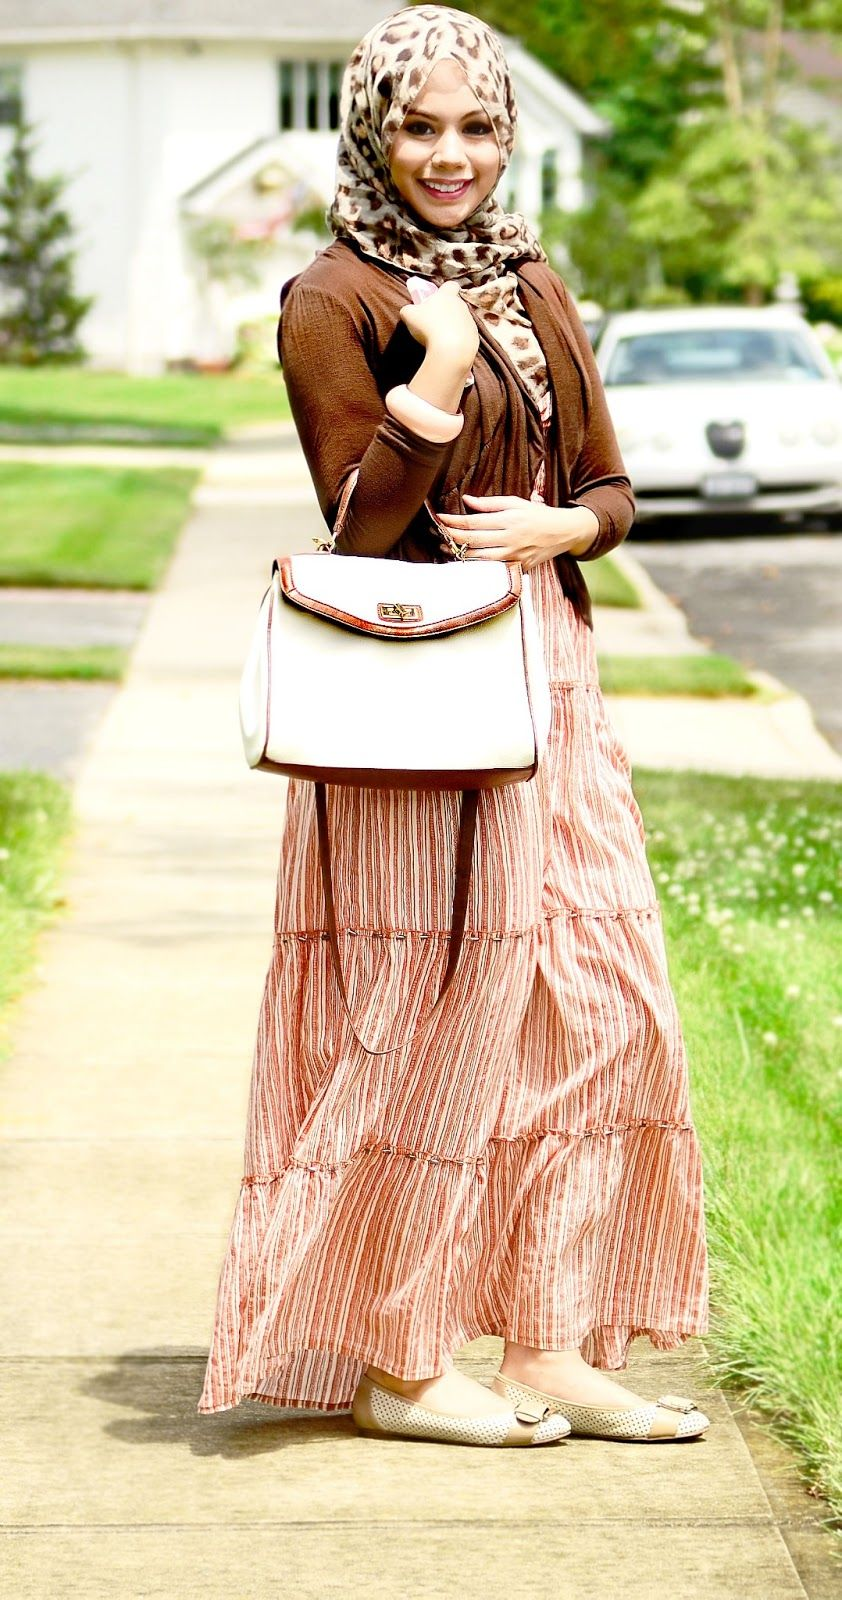 Pin By Myfriendali On Muslim Girls Hijab Fashion Pinterest Maxi Zebry Busana It Is Warming Up With A Bullet So Im Naturally Drawn To Lightweight And Easy Breezy Pieces Like Dresses That Dont Take Much